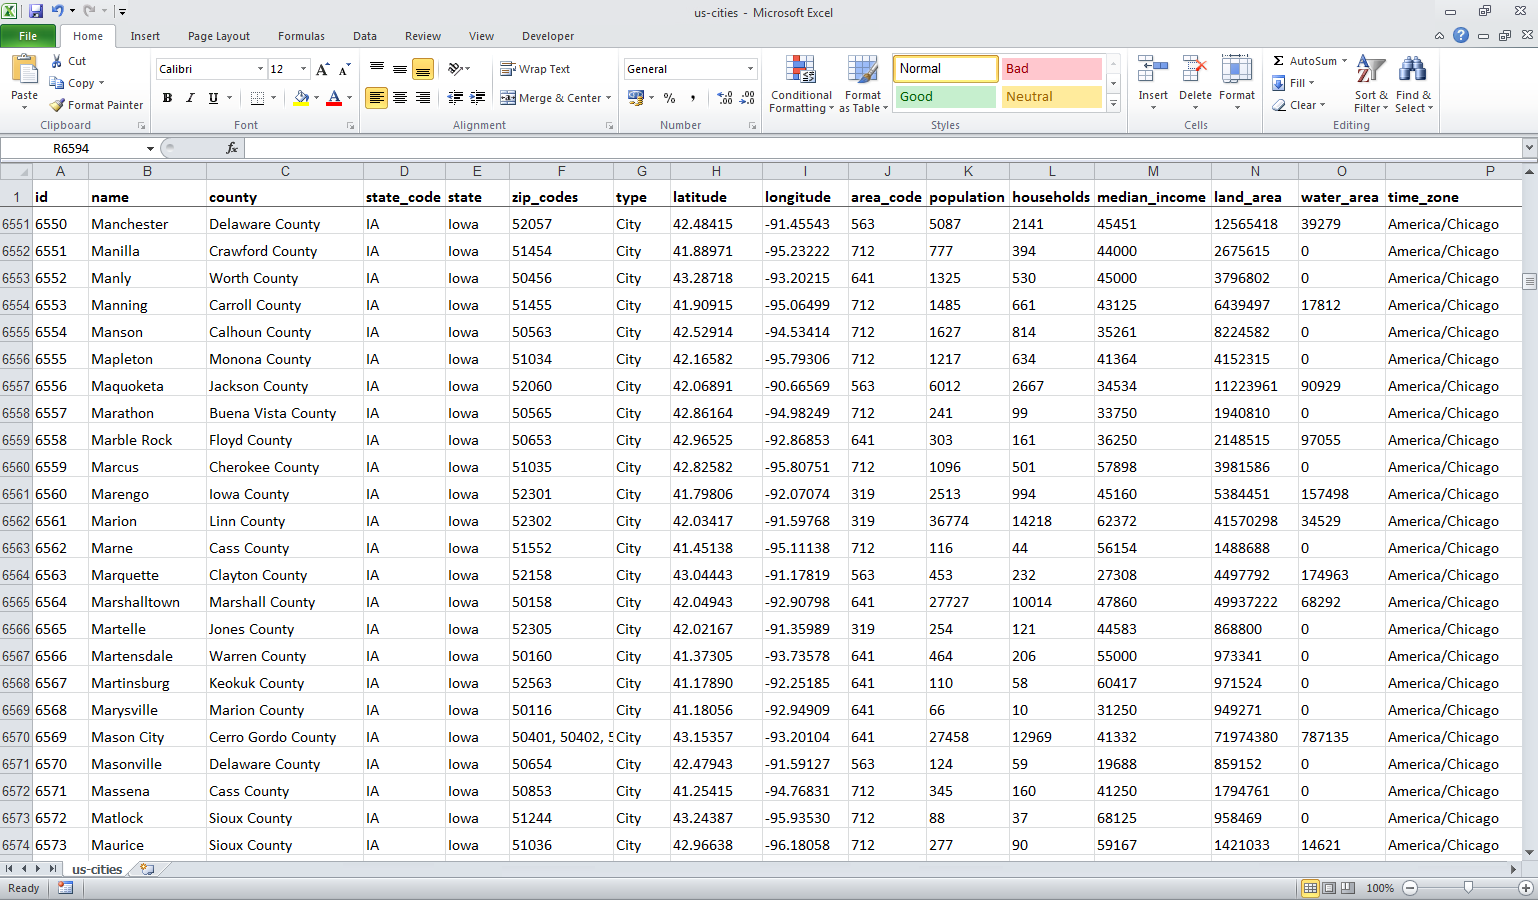 Screenshot Of The Cities List In Excel